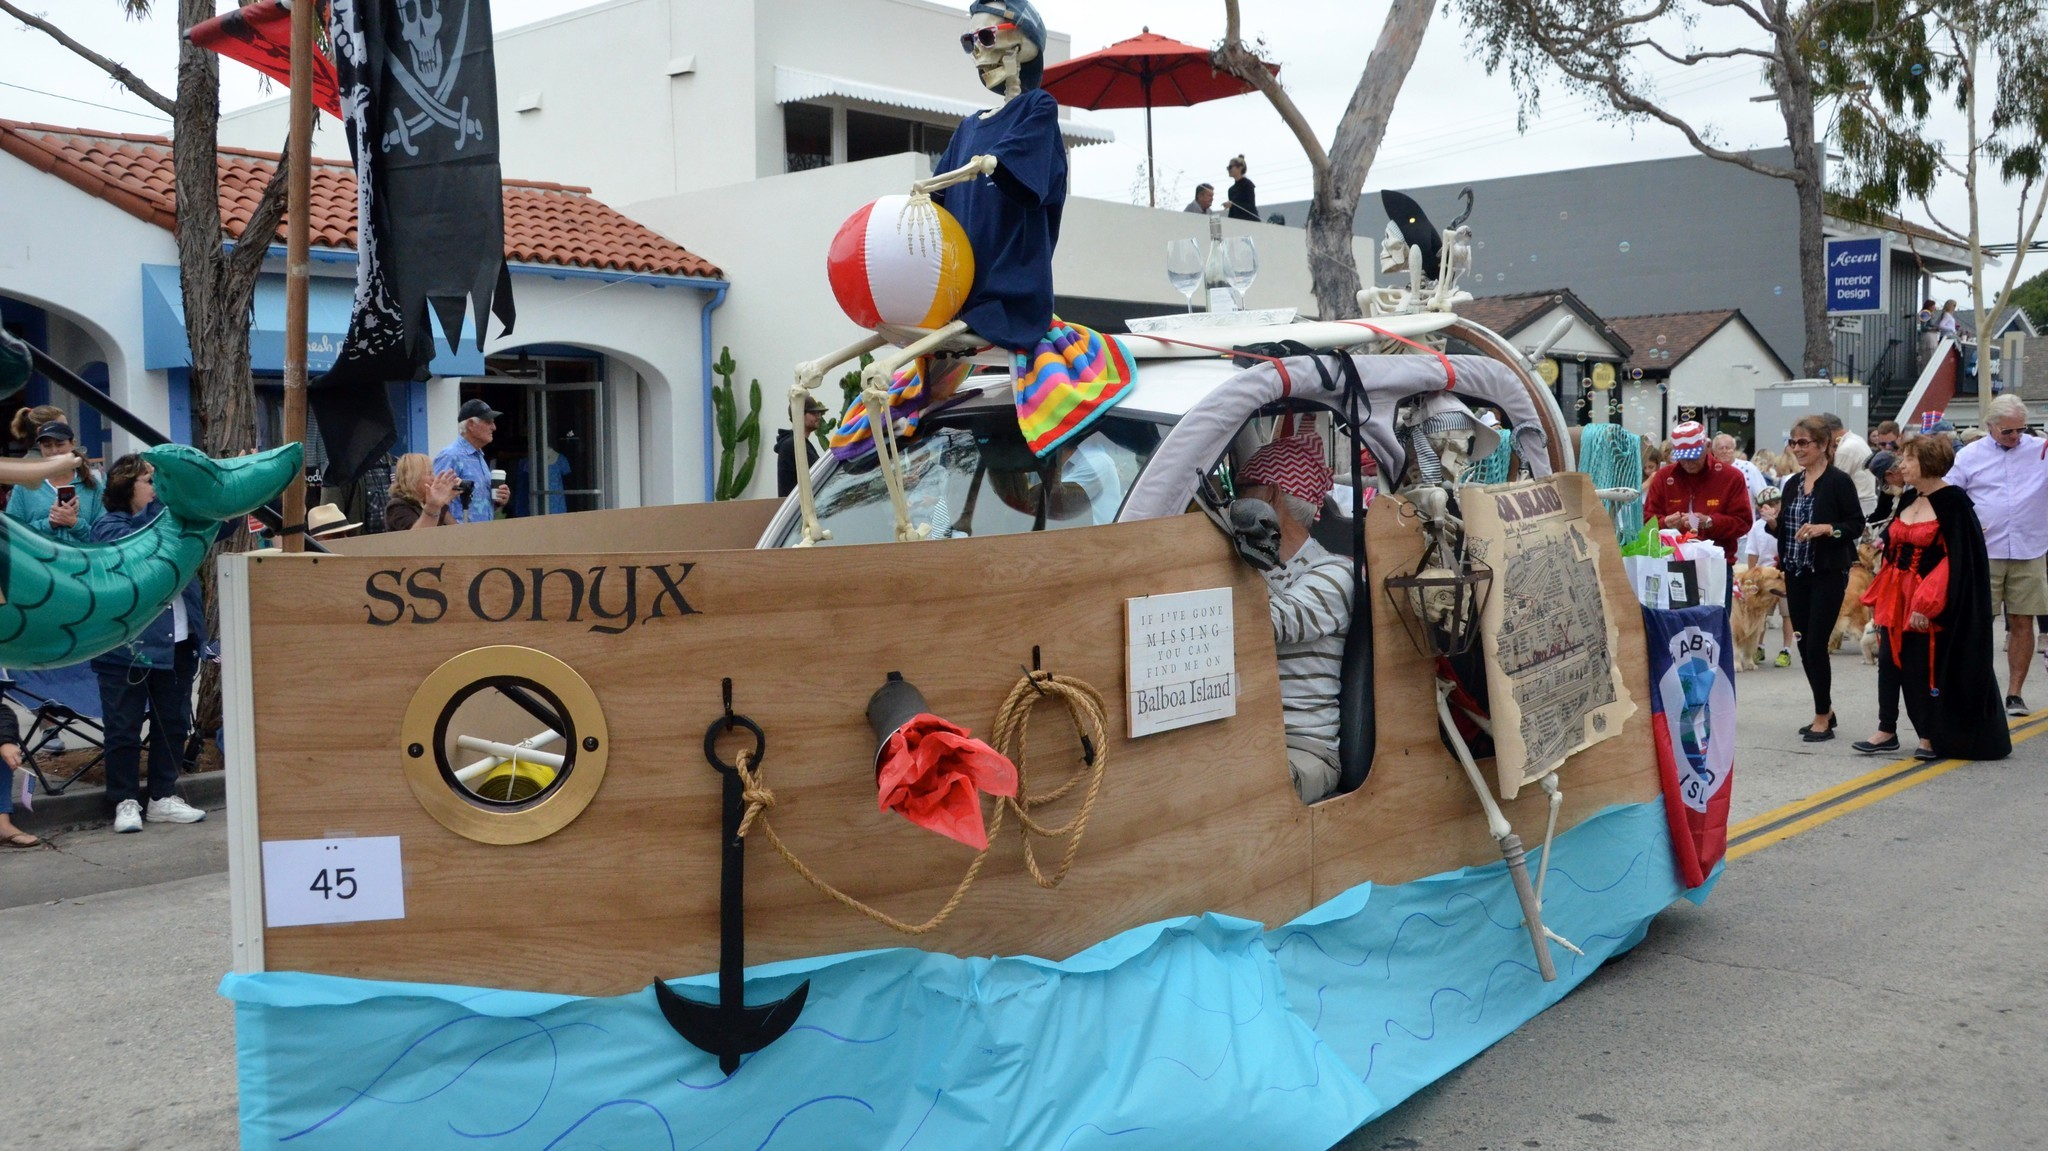 Balboa Island Parade Marches For 26th Year The Morning Call